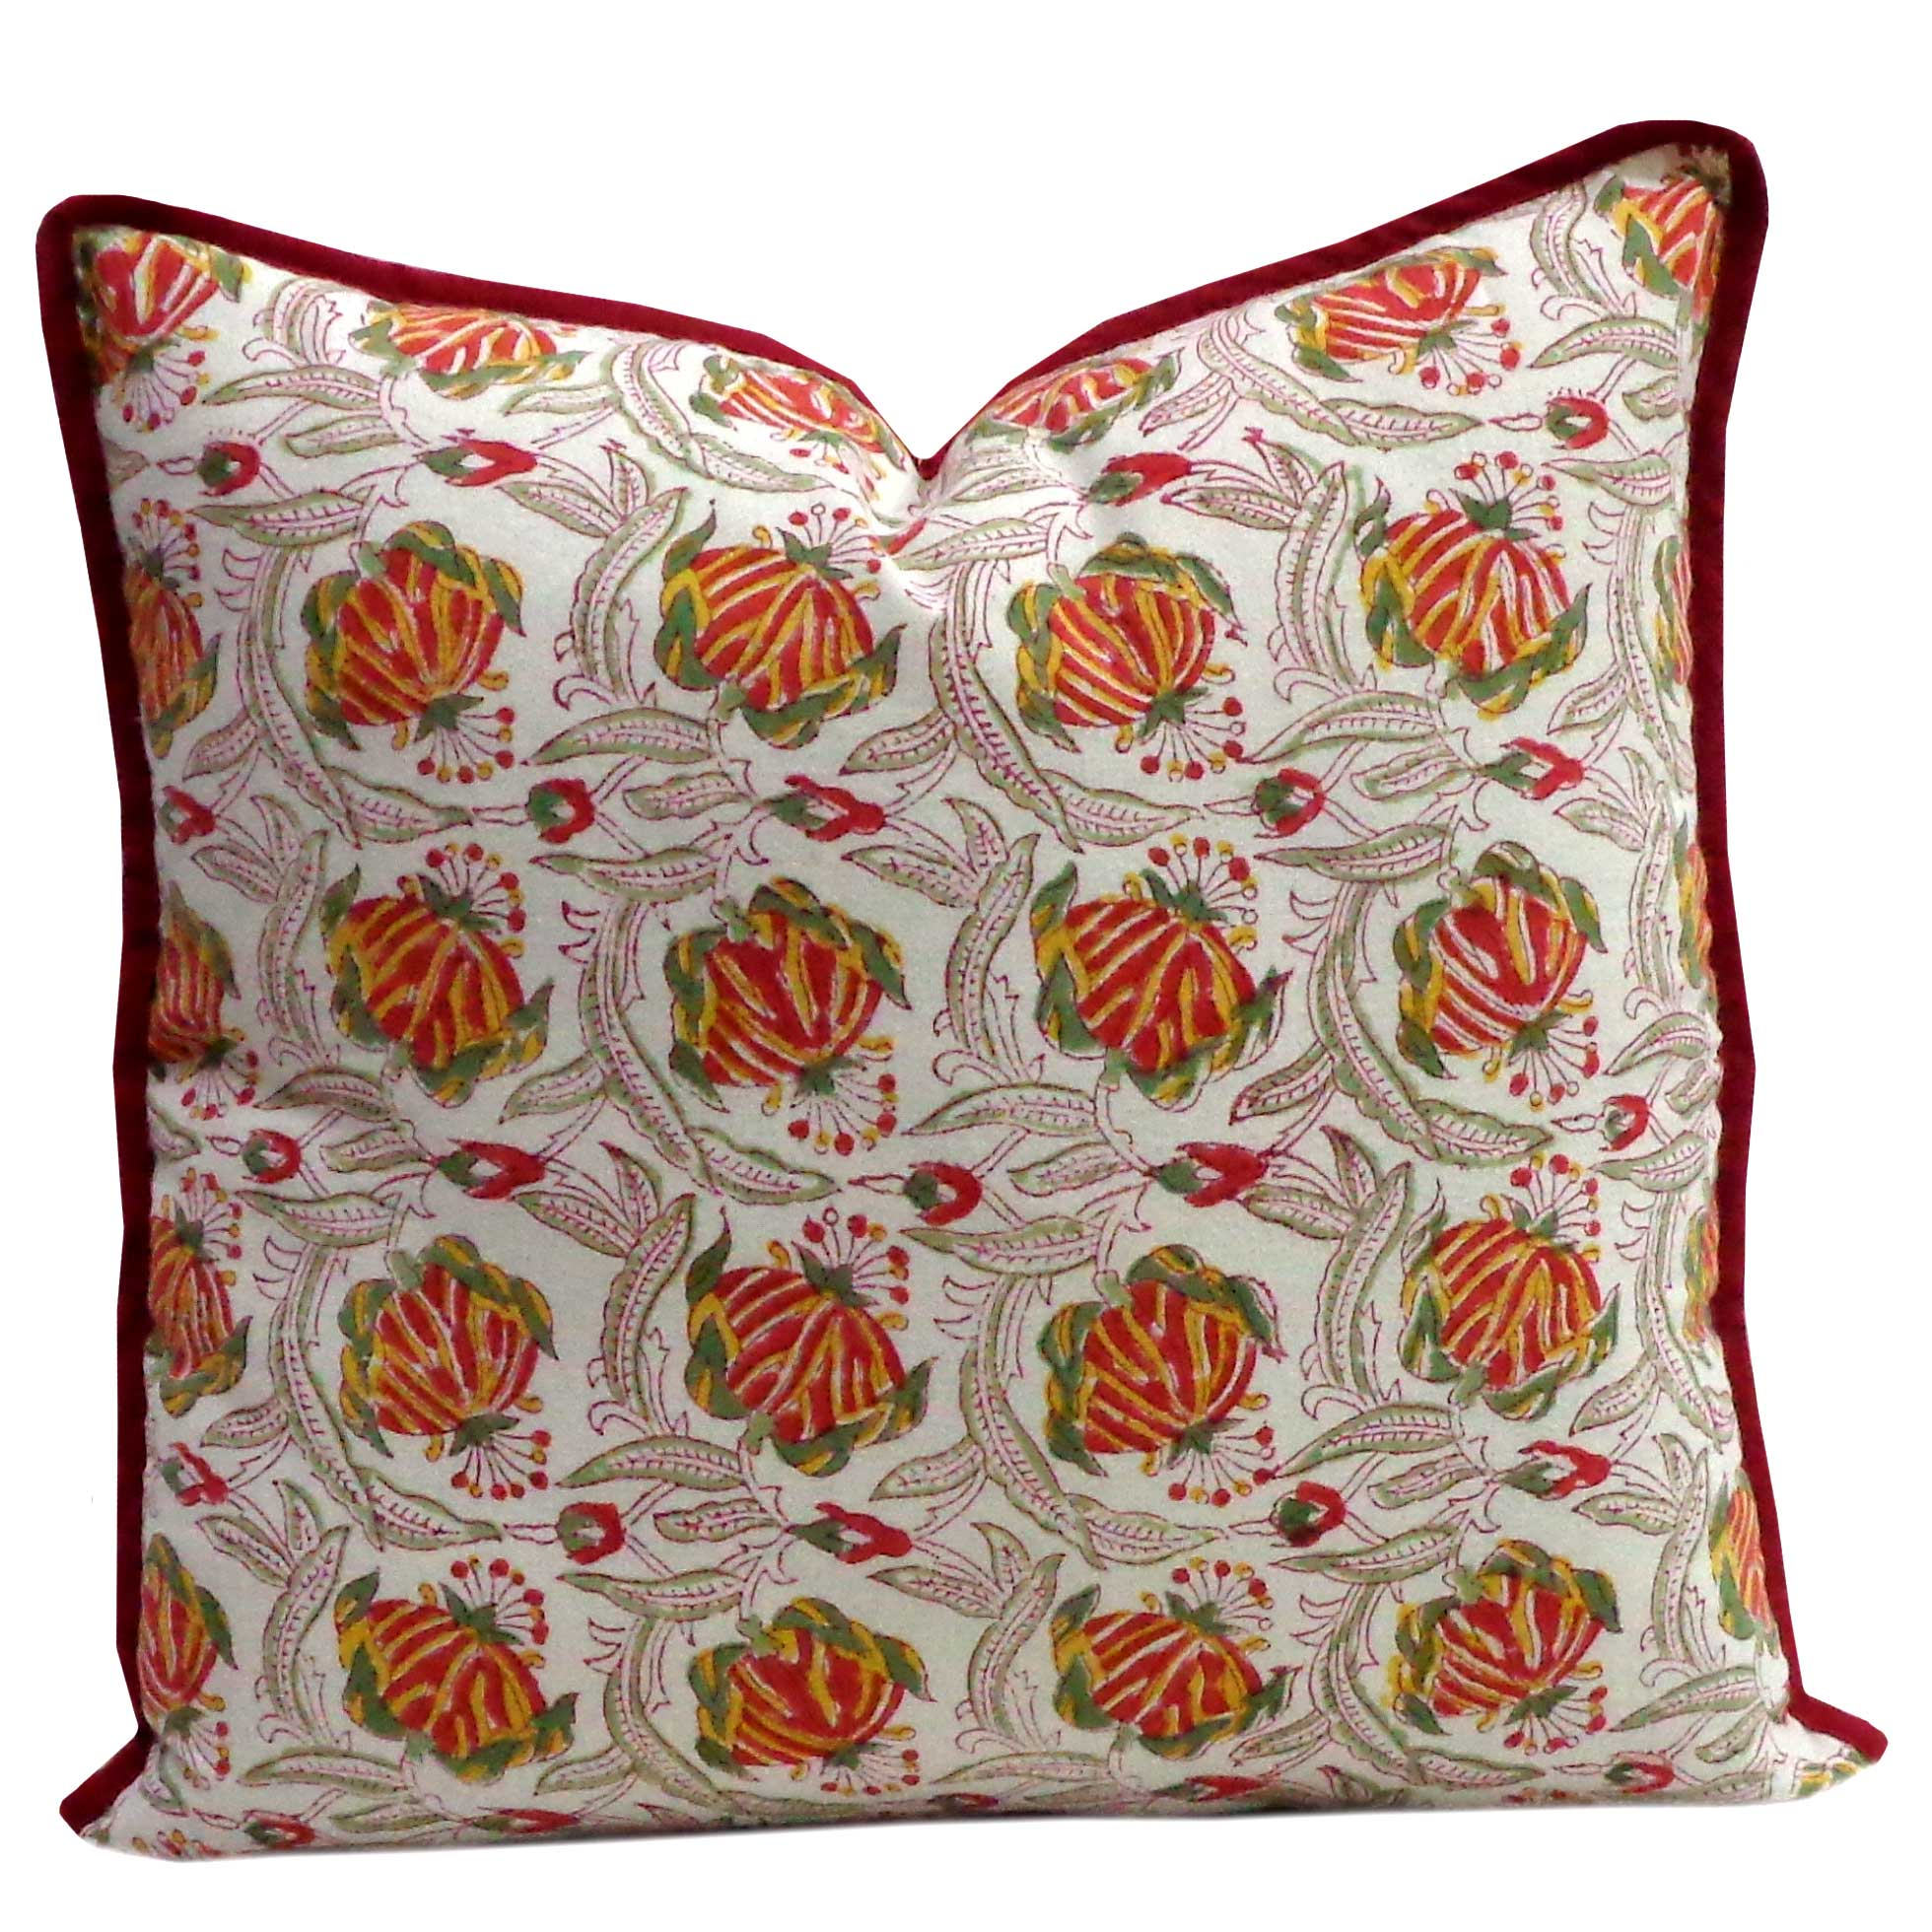 Hand Block Printed Cotton Cushion Cover 40x40 cms | Frost Mustard Floral 101090